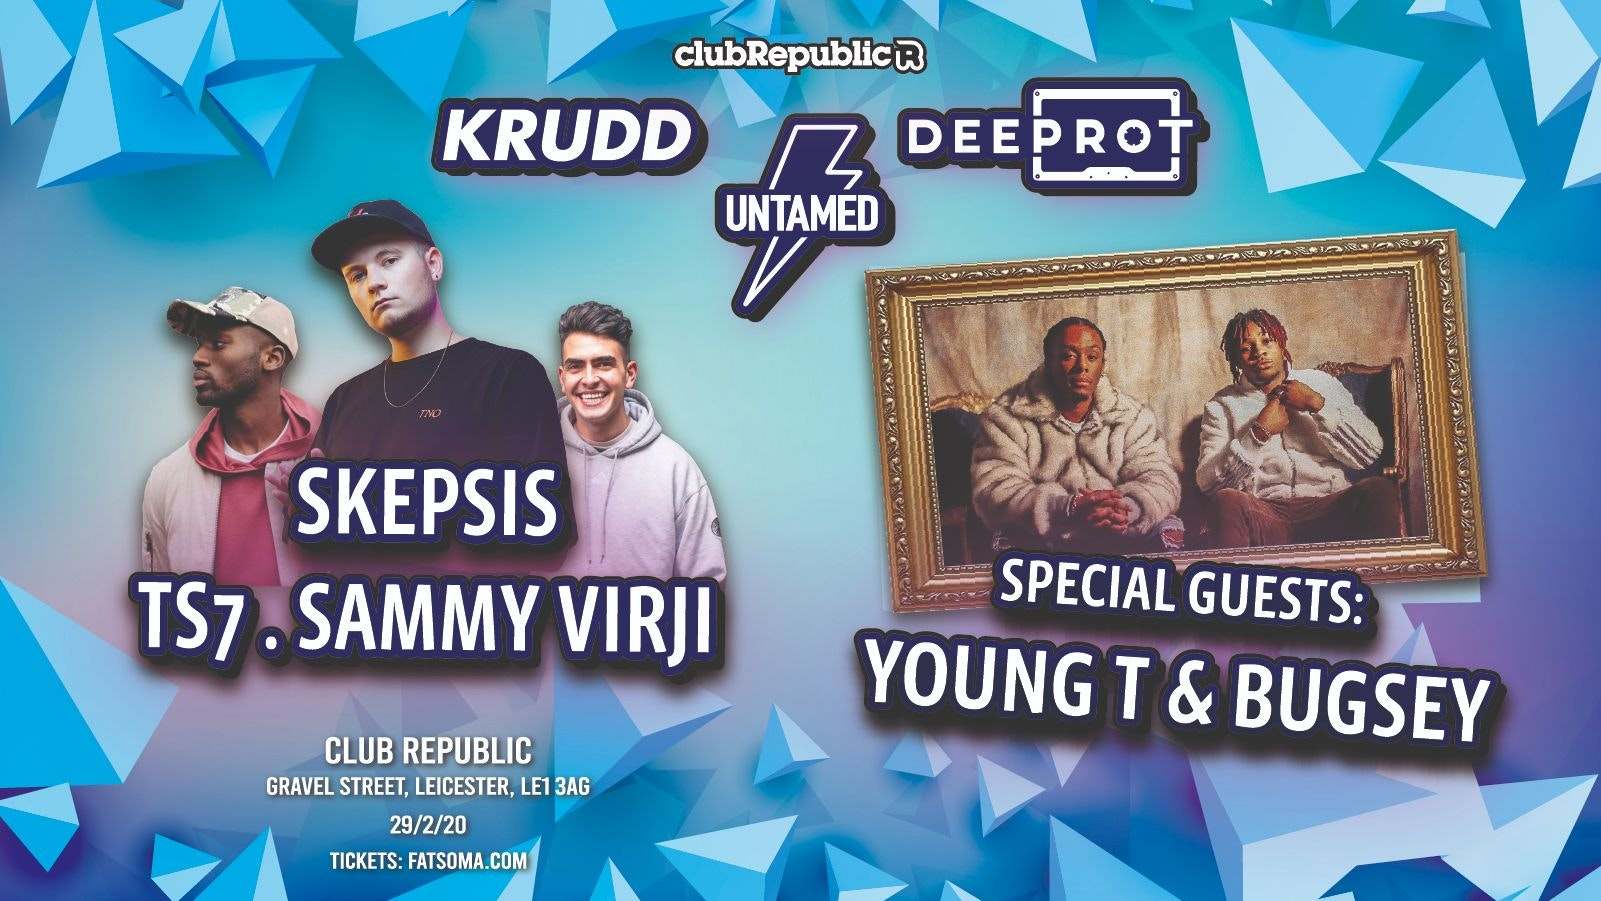 Untamed x Krudd x Deeprot Present: Skepsis, TS7, Sammy Virji // Special Guests Young T & Bugsey